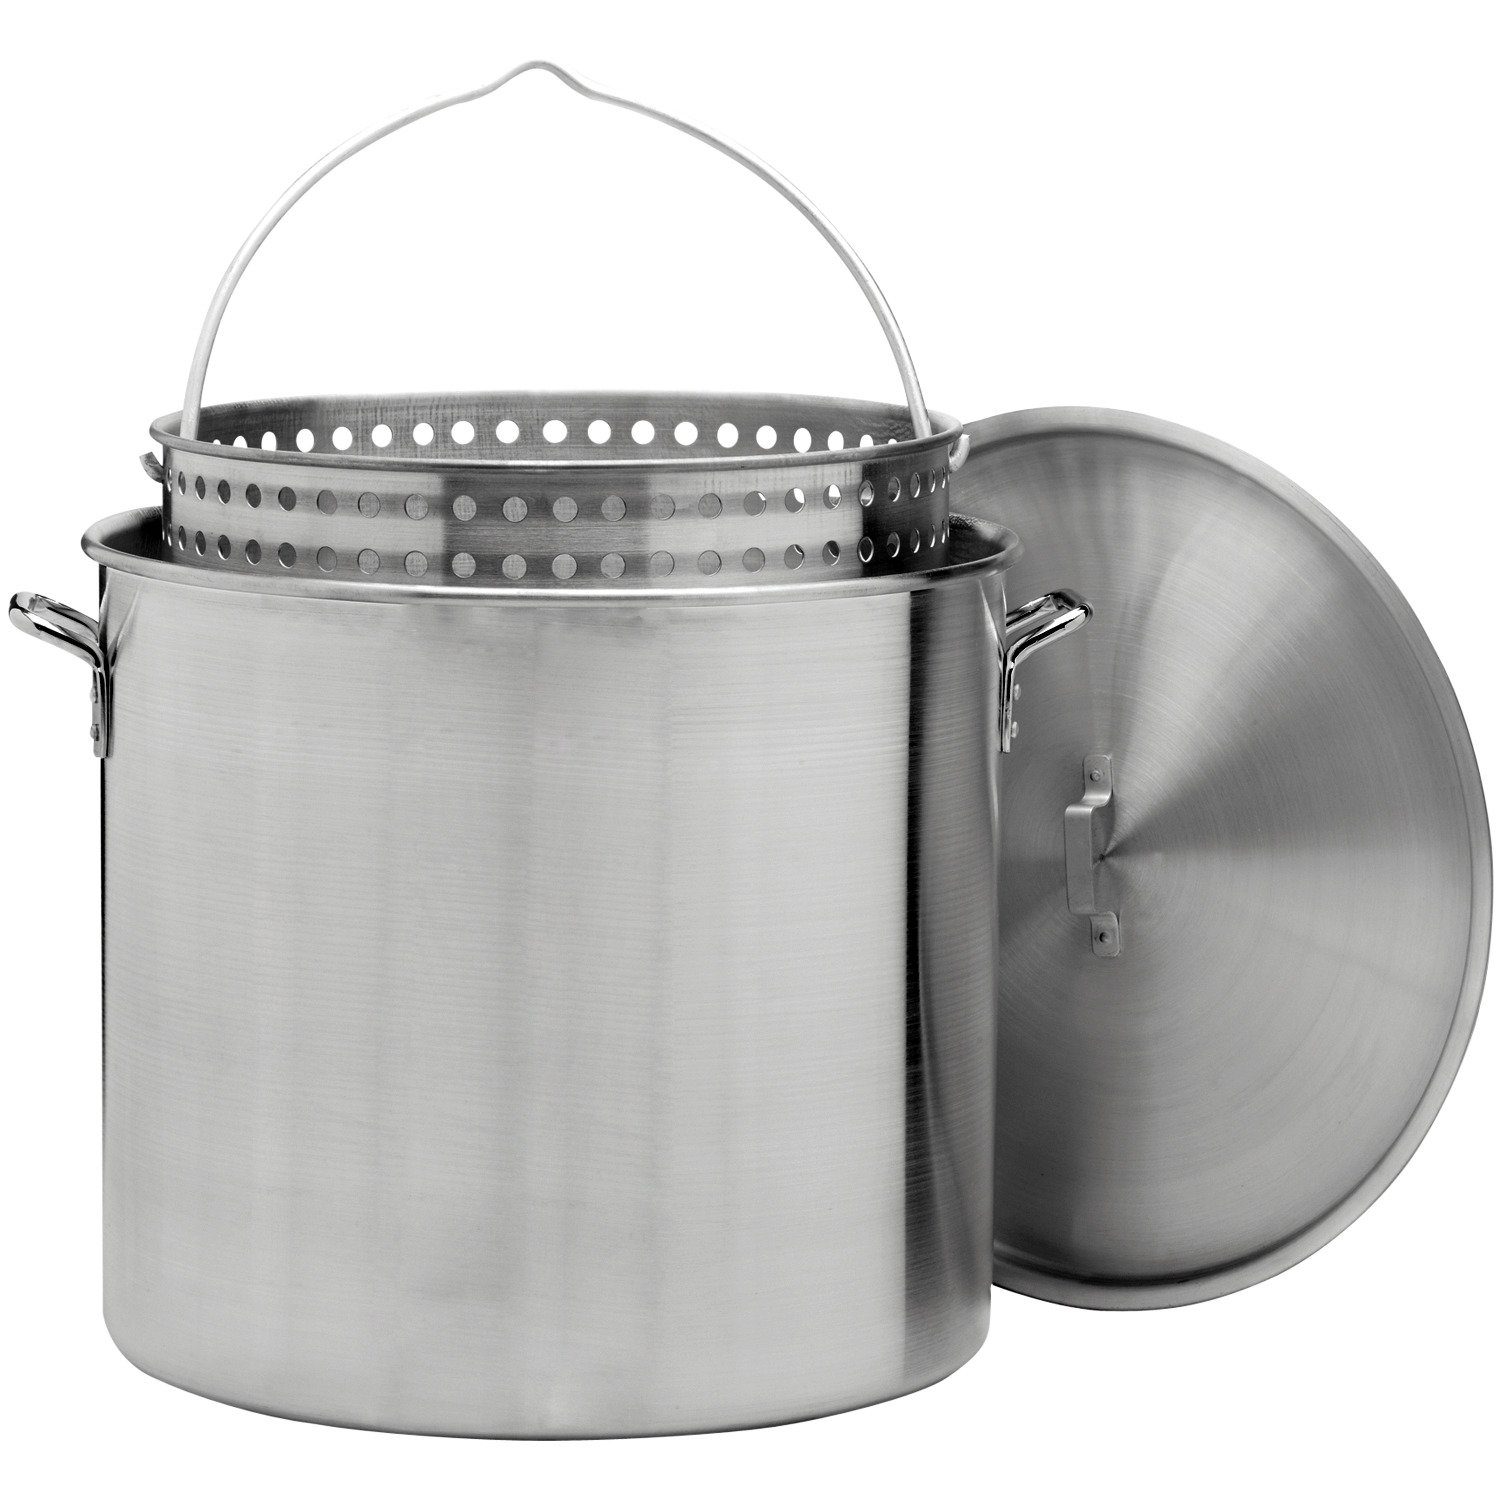 Big W Stock Pot Pots And Pans Stainless Steel Pot Kits Cooking Pots Cooking